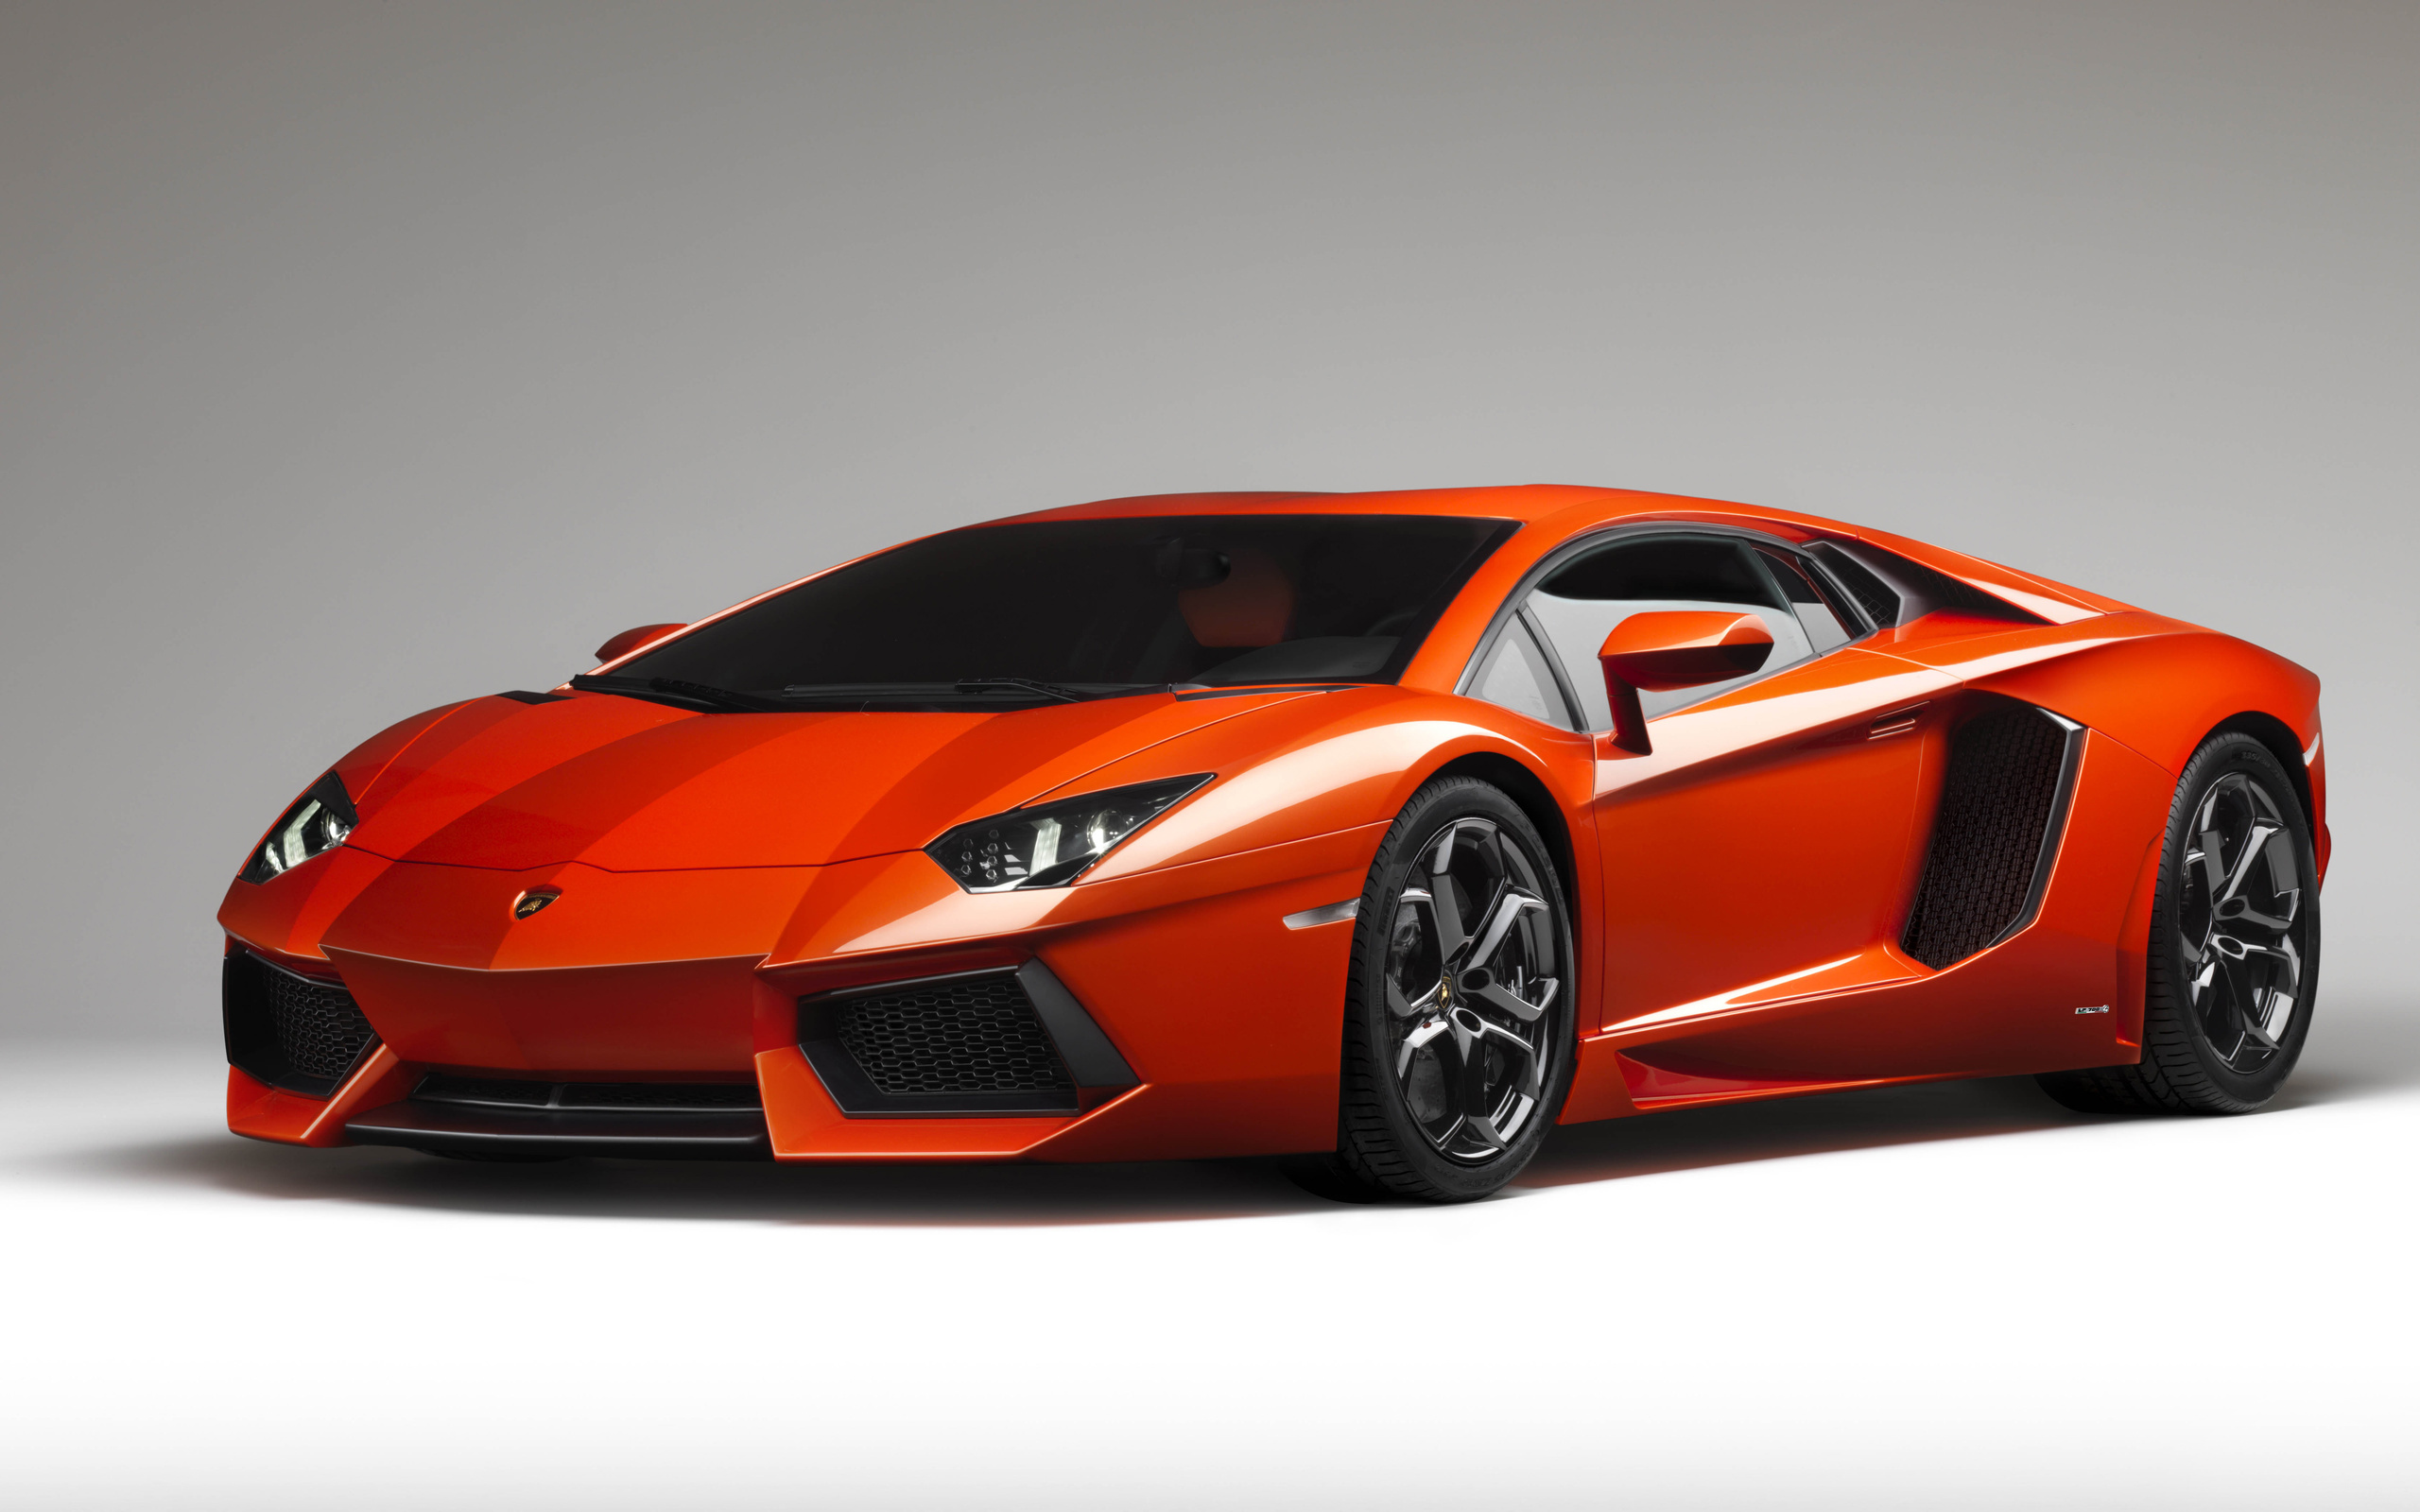 2012 Lamborghini Aventador LP700 4 Wallpapers HD Wallpapers 2560x1600